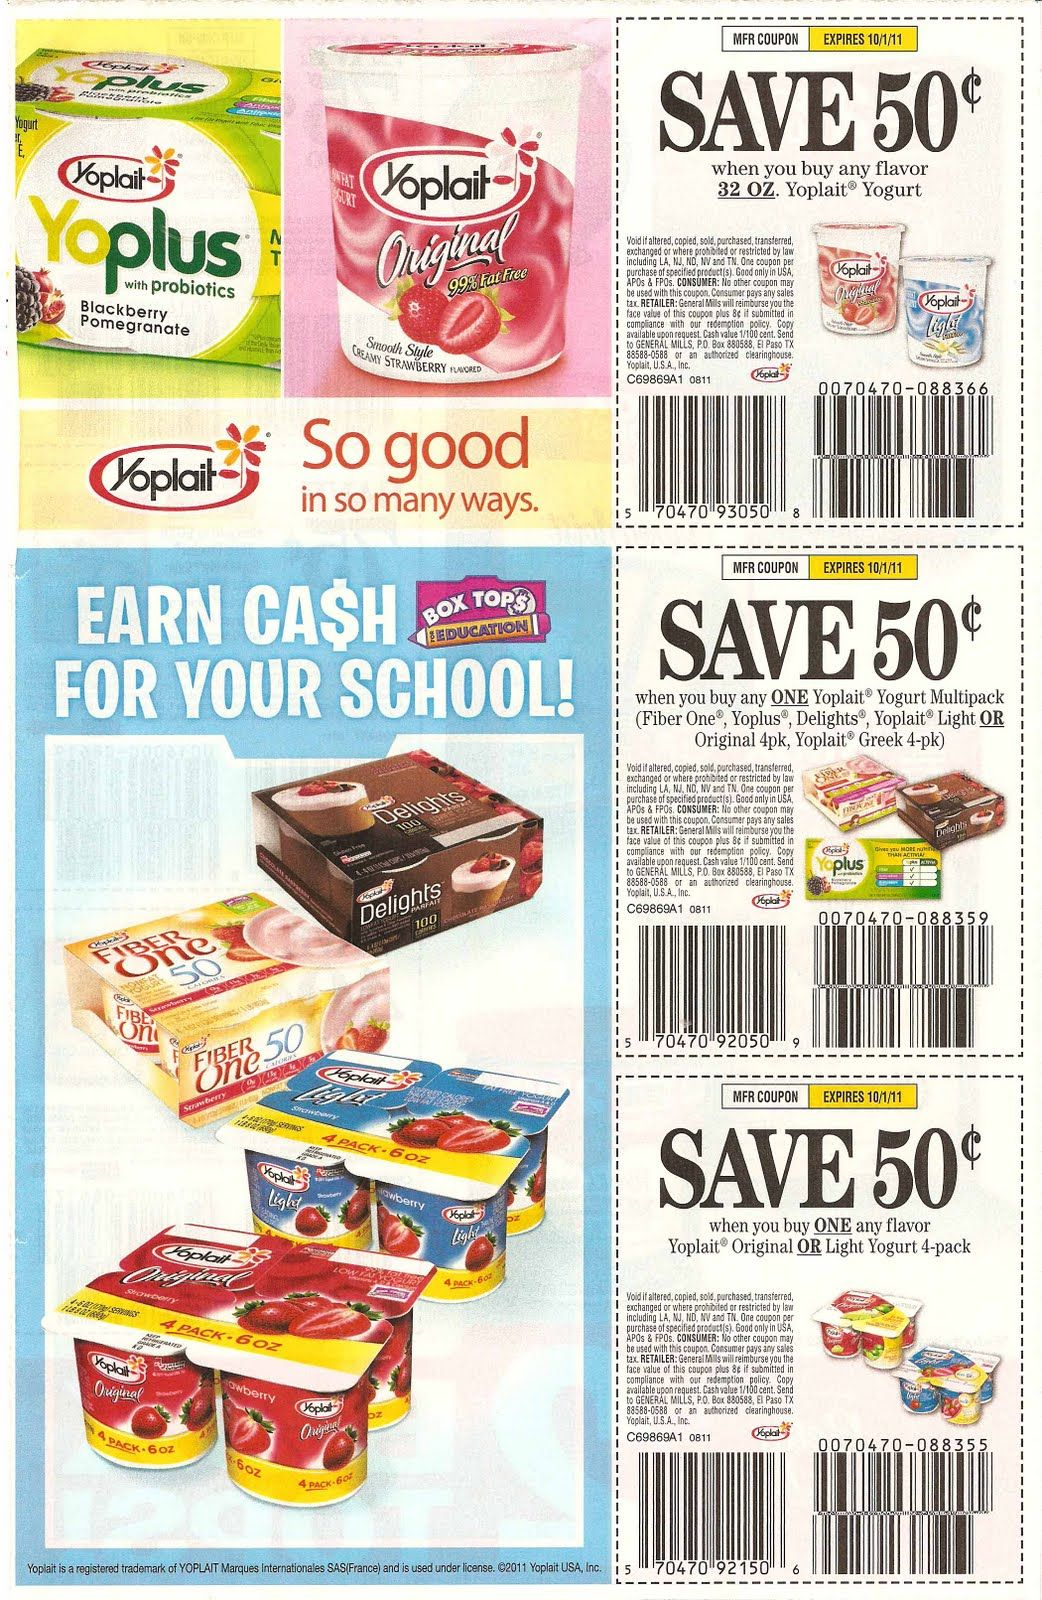 photo about Ocean State Job Lot Coupons Printable named Pin upon lead coupon offers